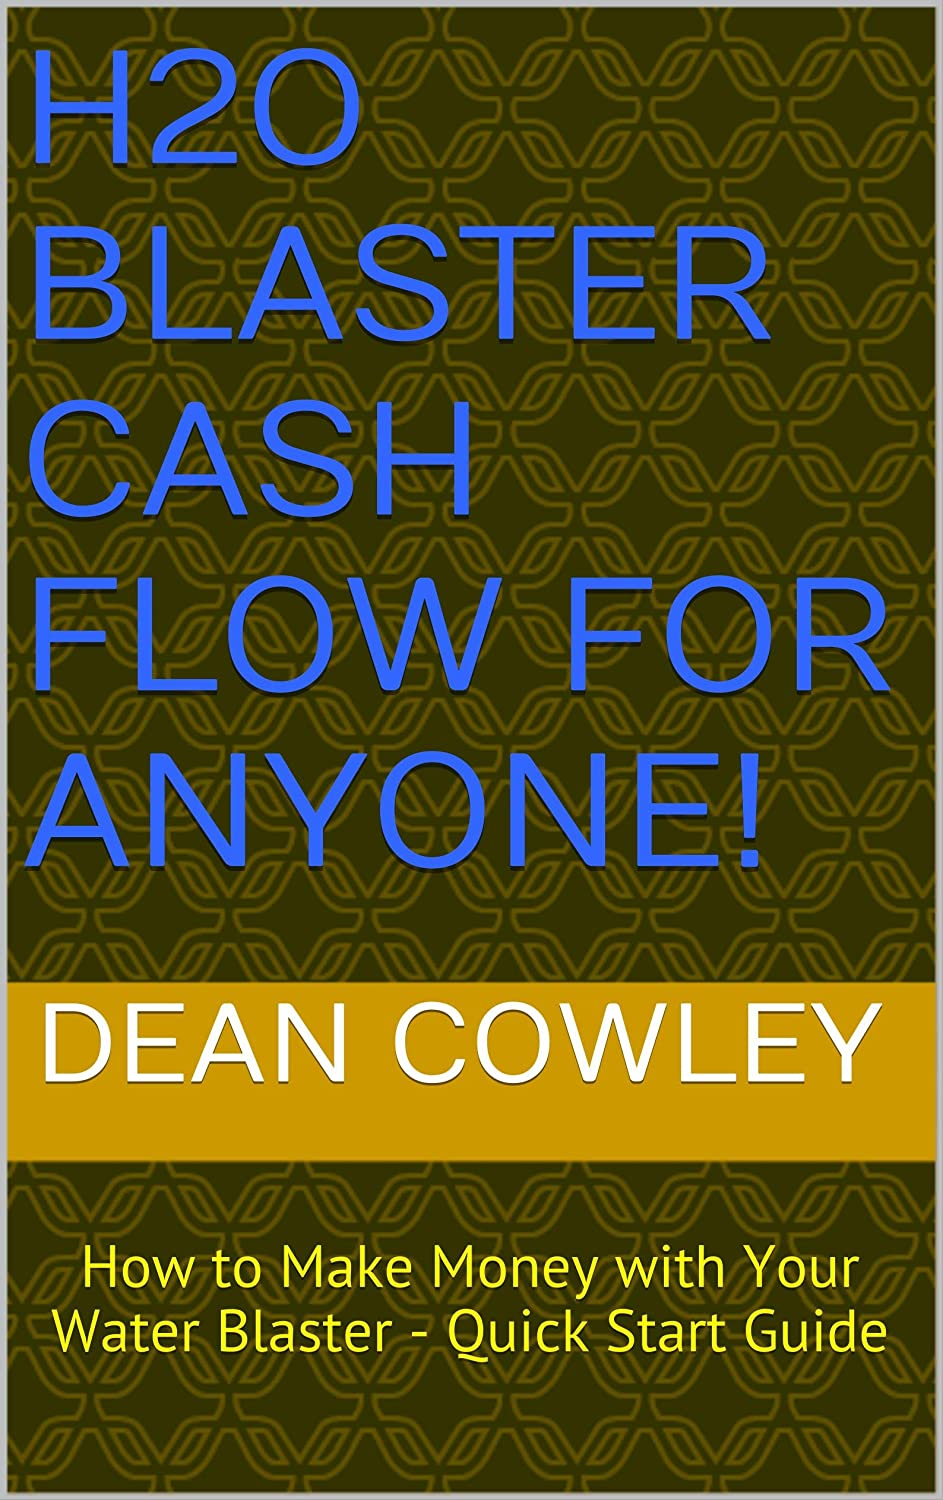 H2O Blaster Cash Flow for Anyone!: How to Make Money with Your ...